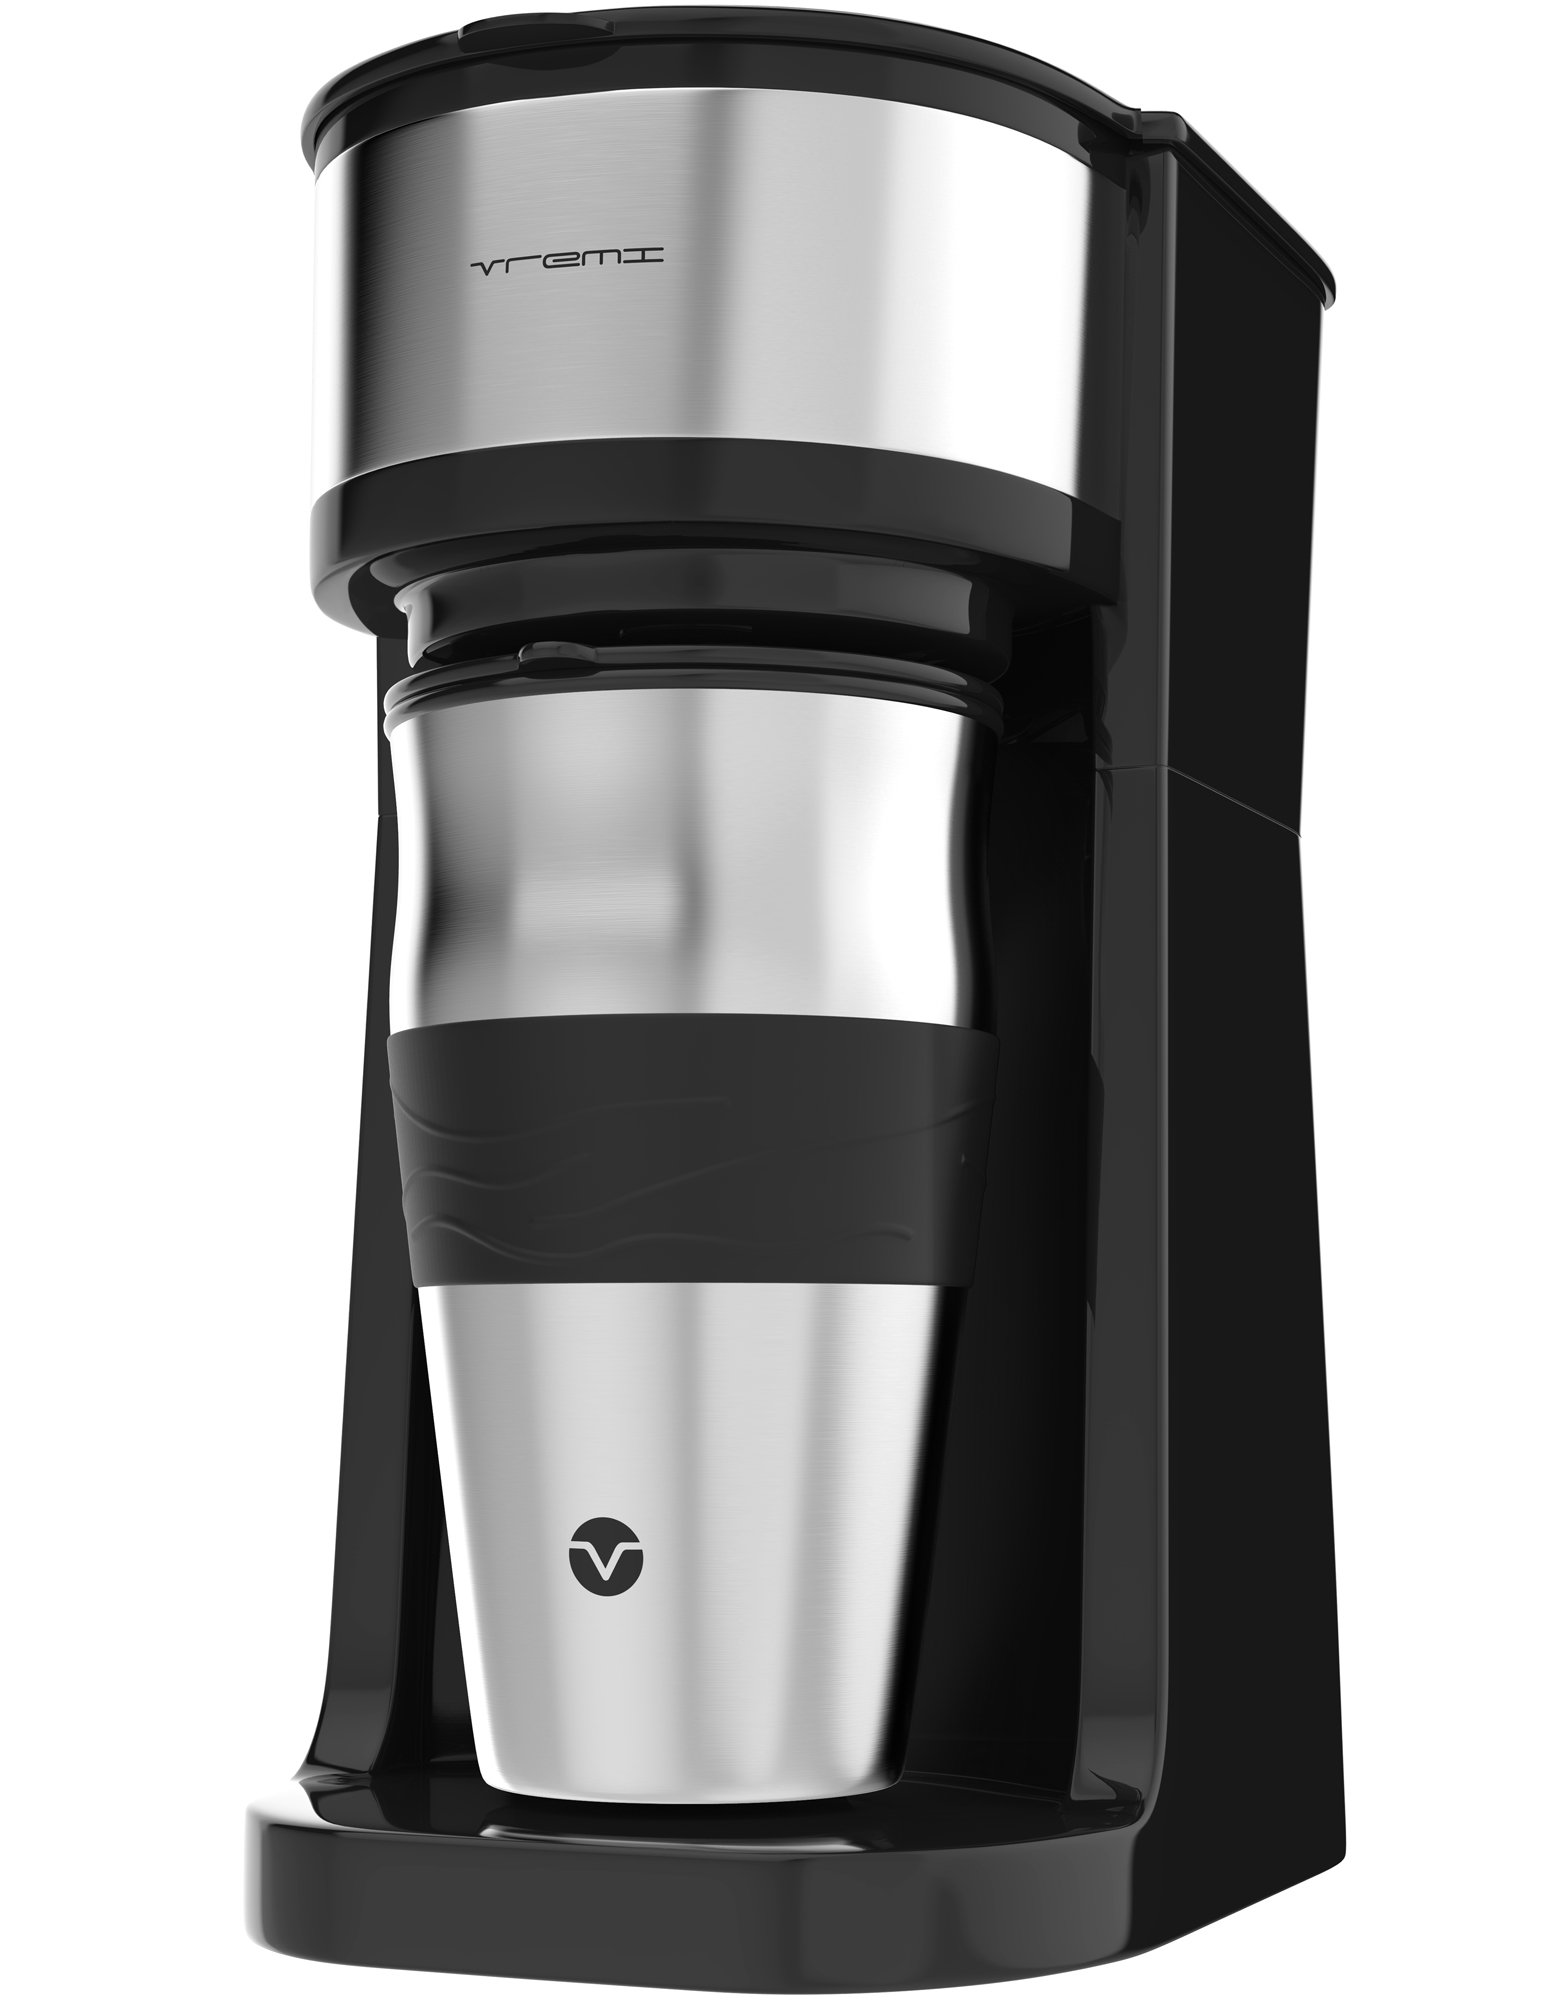 Vremi Single Cup Coffee Maker - includes 14 oz Travel Coffee Mug and Reusable Filter - Personal 1 Cup Drip Coffee Maker to Brew Ground Beans - Black and Silver Single Serve One Cup Coffee Dripper